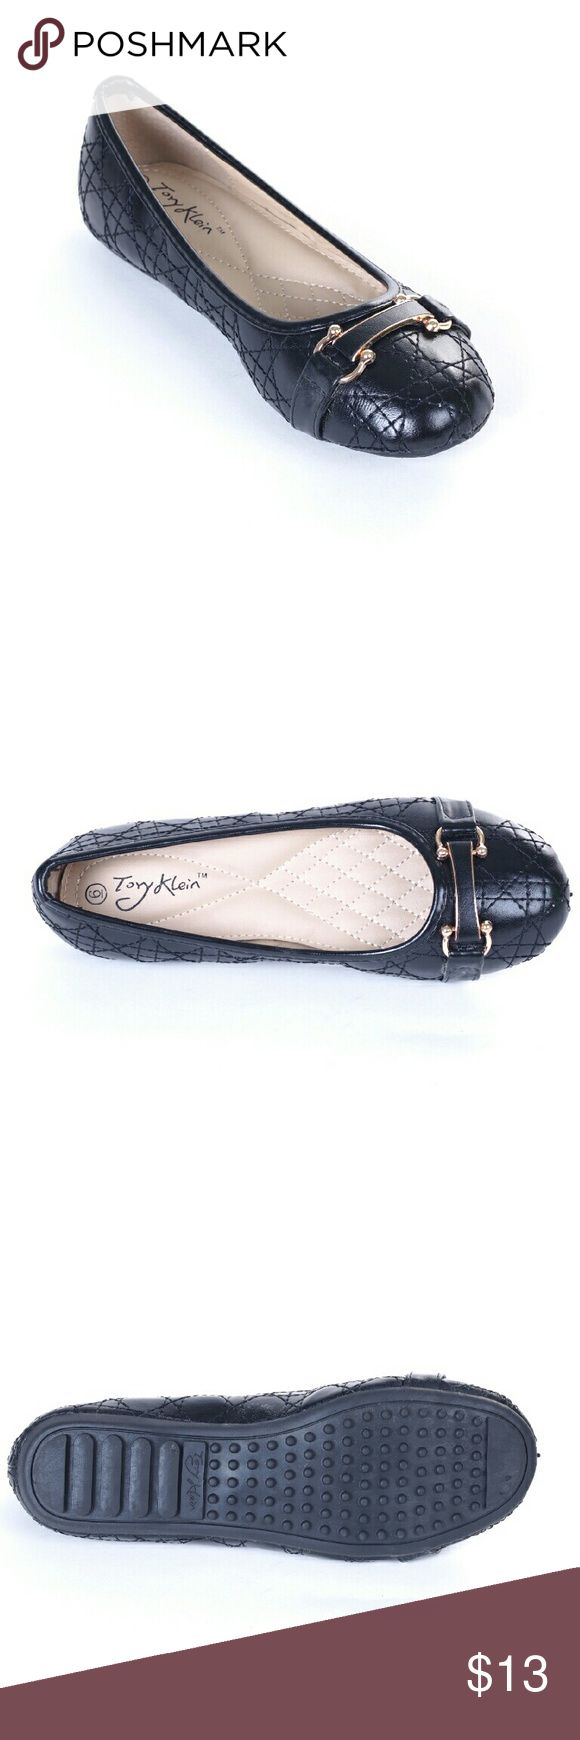 Tory K Buckled Stitched Flats,  b-1639, Black Brand new Tory Klein flats in glossy black with a horseshoe buckle (for luck!) and intricate stitched design. Soft cushioned sole, very comfortable, true to size. Bubbled bottom sole for extra traction. Tory Klein  Shoes Flats & Loafers